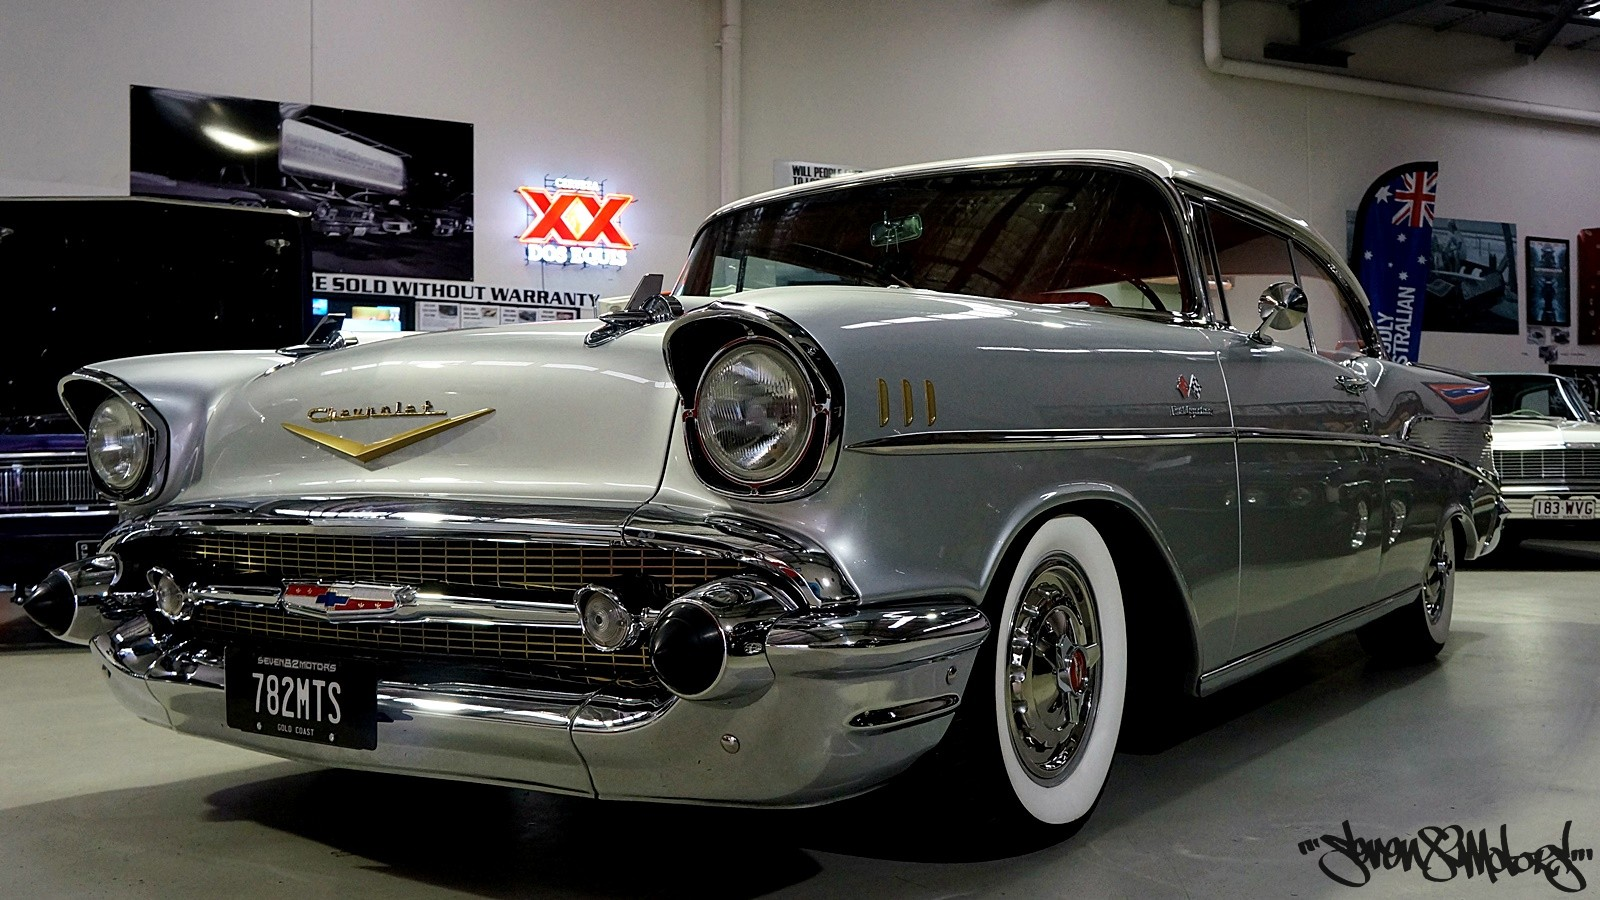 Sold 1957 Chevy Belair Seven82motors Bel Air 4 Door It Is The Responsibility Of Buyer To Have Thoroughly Inspected Vehicle And Satisfied Himself Or Herself As Condition Value